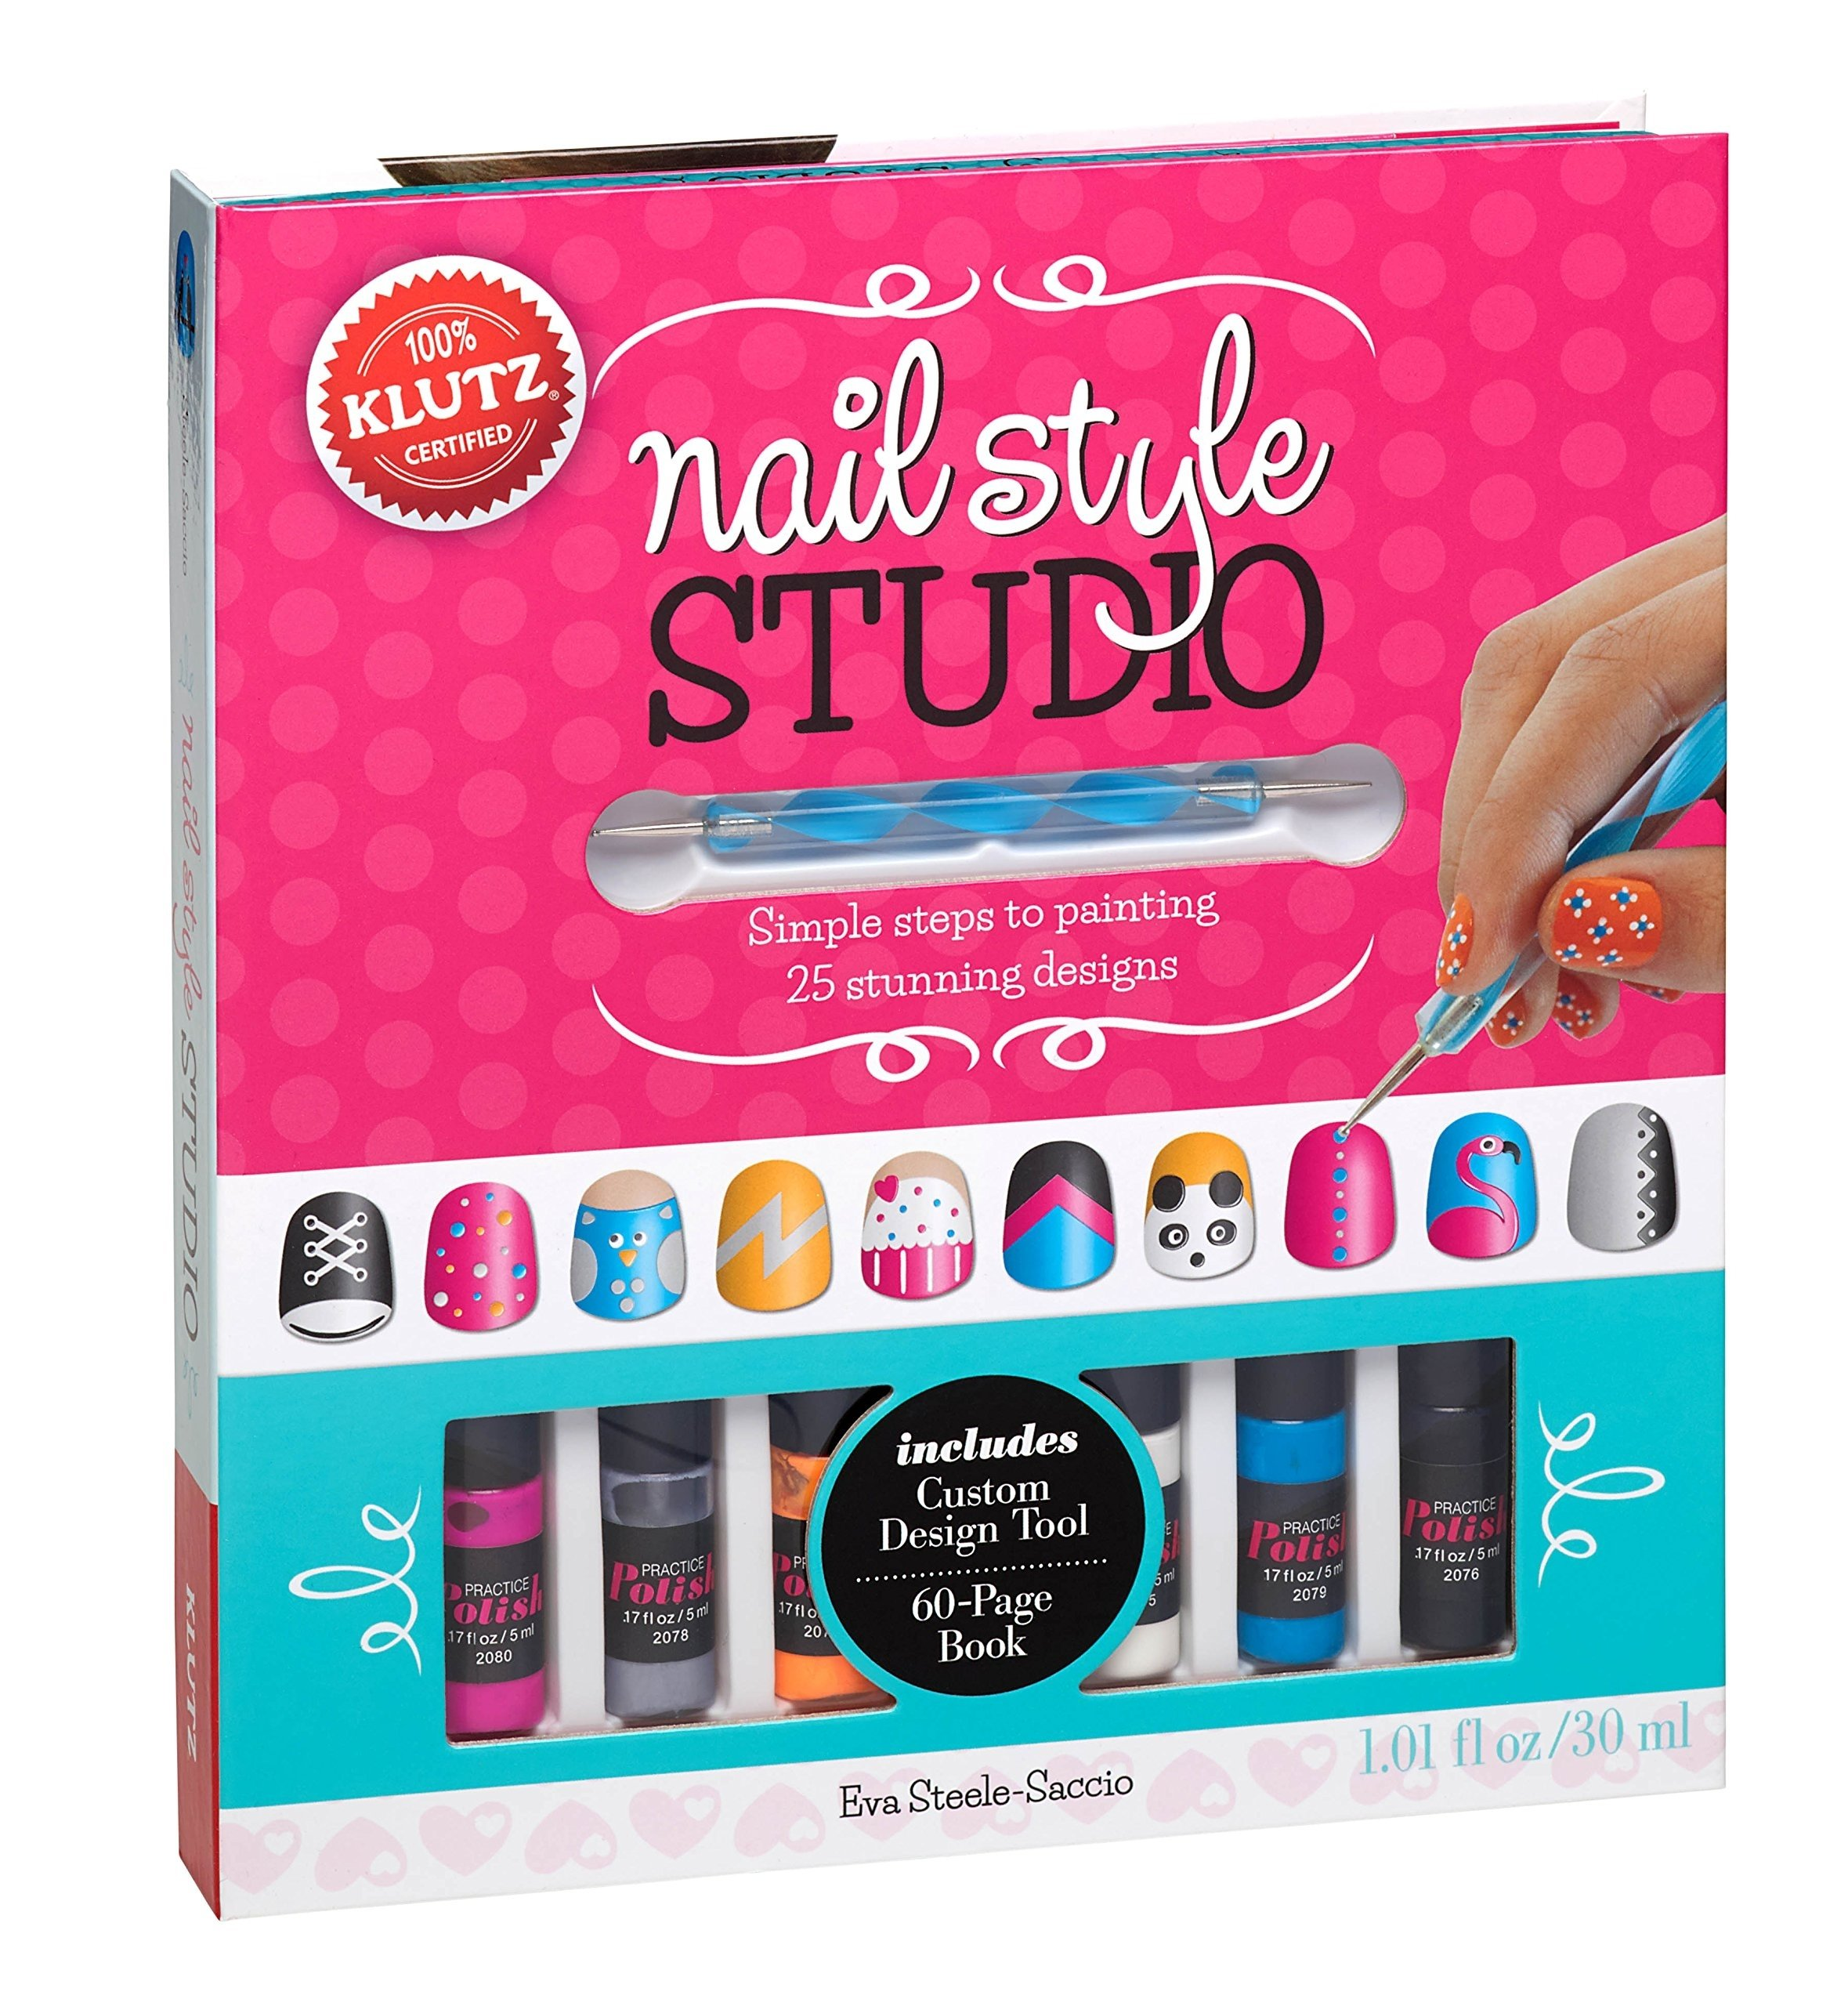 10 Great Christmas Gift Ideas For 10 Year Old Girls klutz nail style studio book kit sassy pants kaylee pinterest 2020